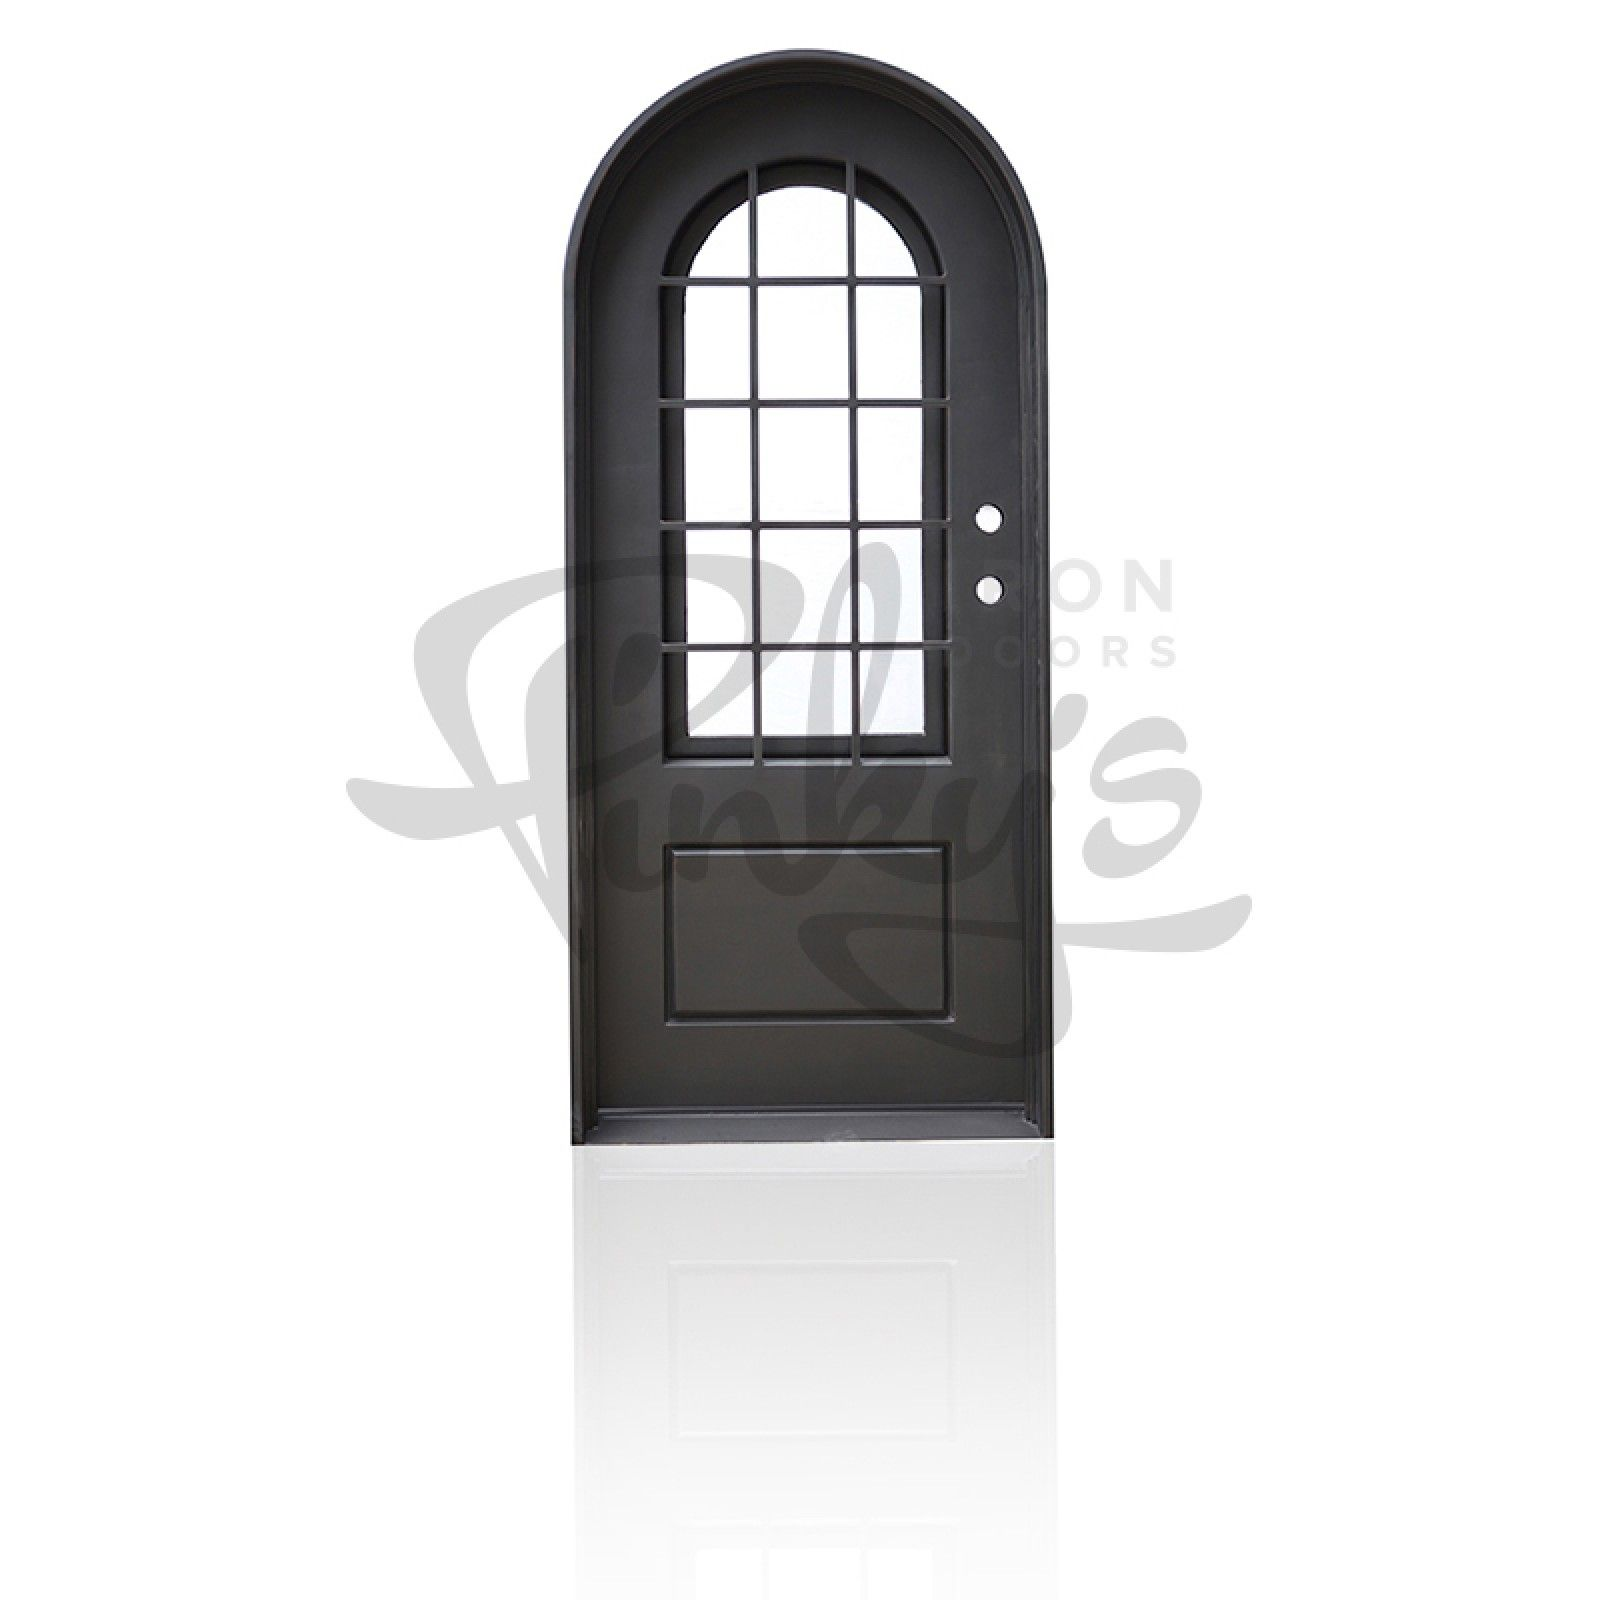 Exterior Wrought Iron Entry Front Doors Single Full Arch 36 X 81 40 X 96 36 X 96 40 X 82 Pinky S Air Wrought Iron Doors Front Entry Doors Iron Doors